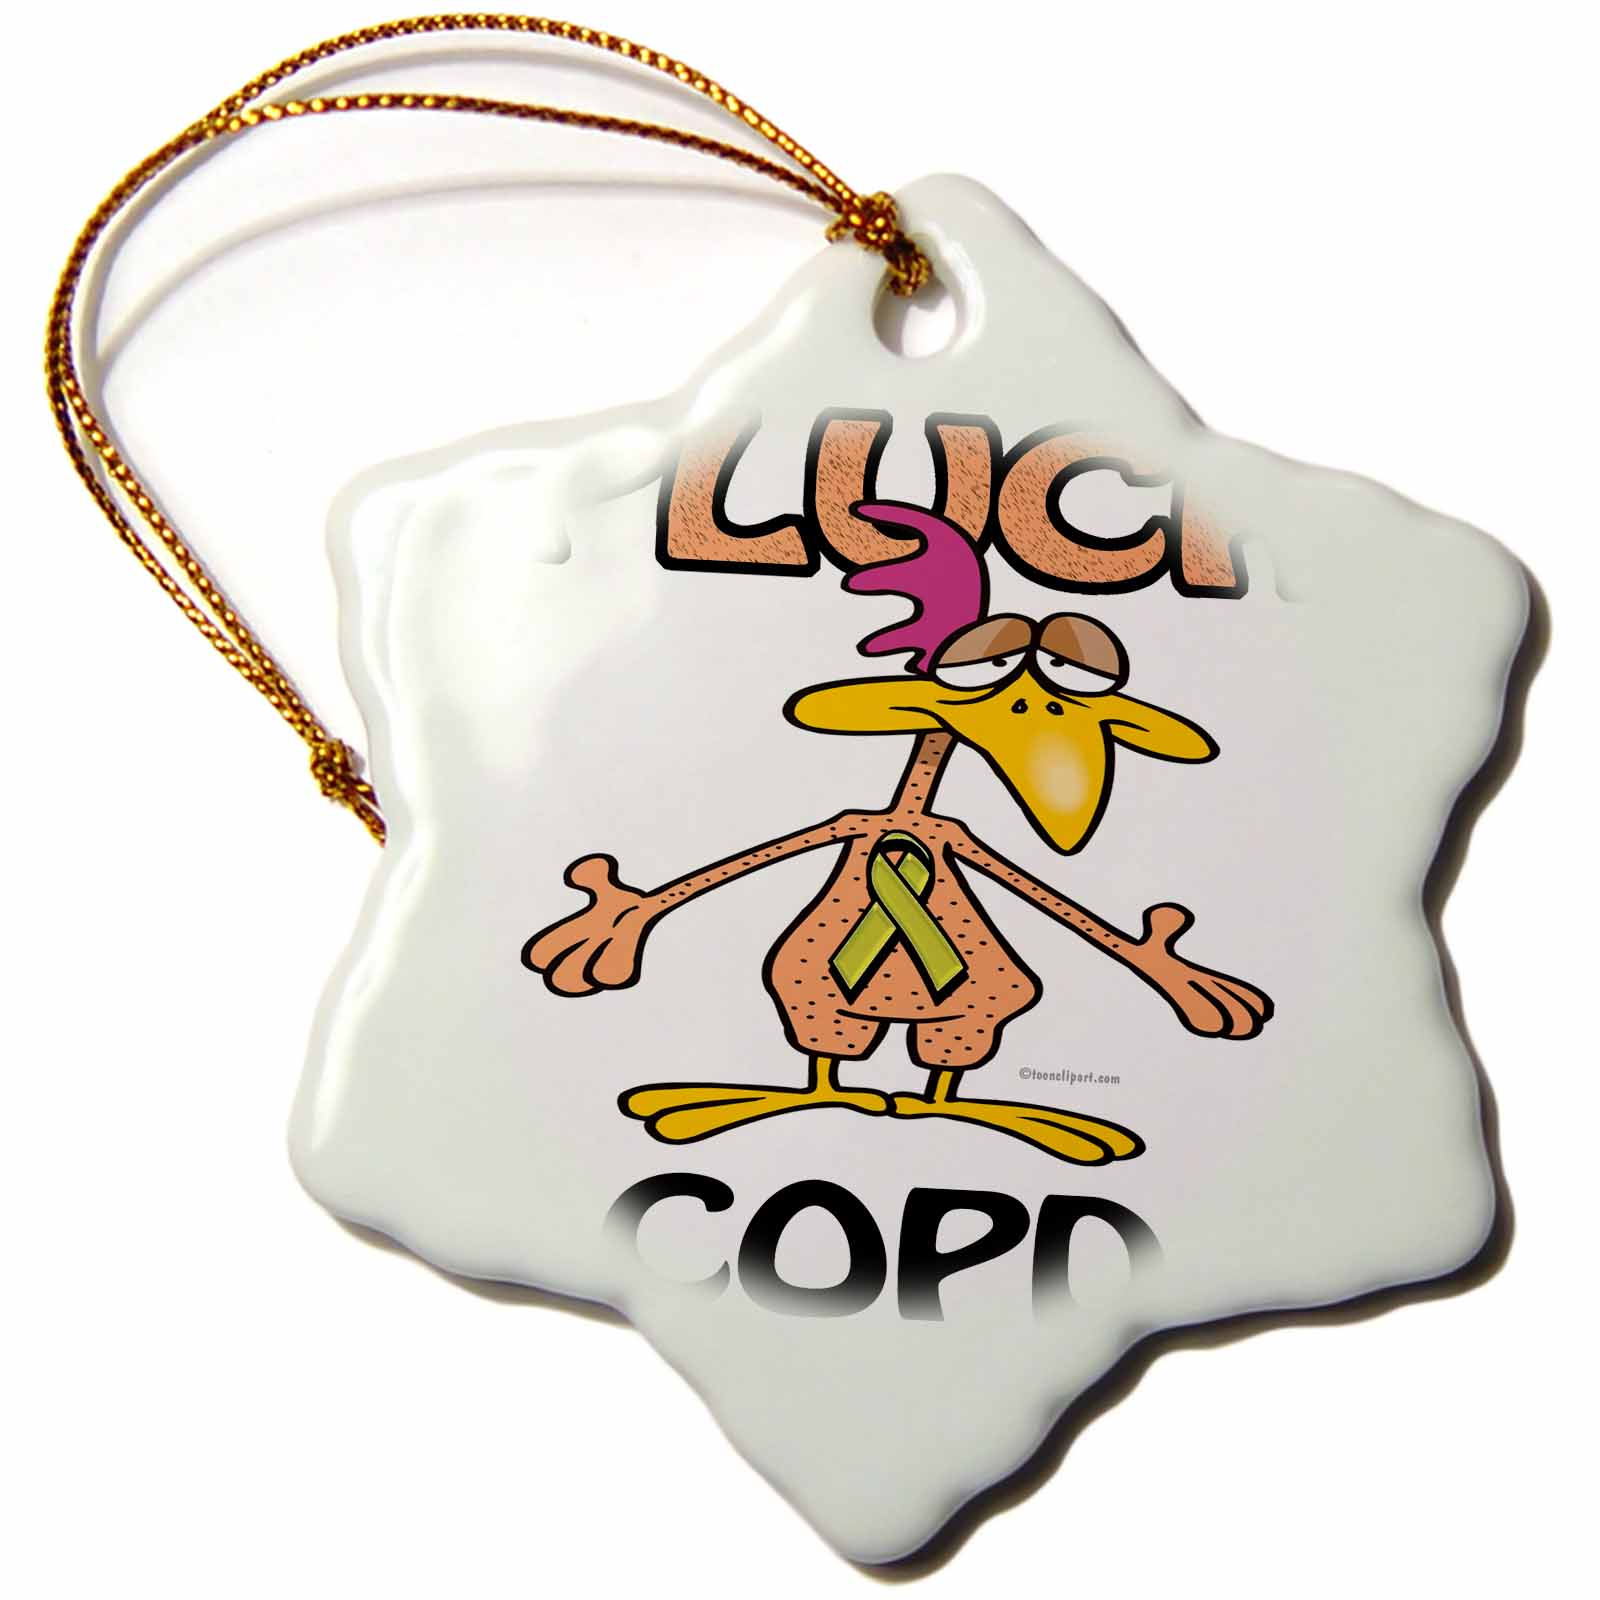 3dRose Chicken Pluck COPD Awareness Ribbon Cause Design, Snowflake Ornament, Porcelain, 3-inch